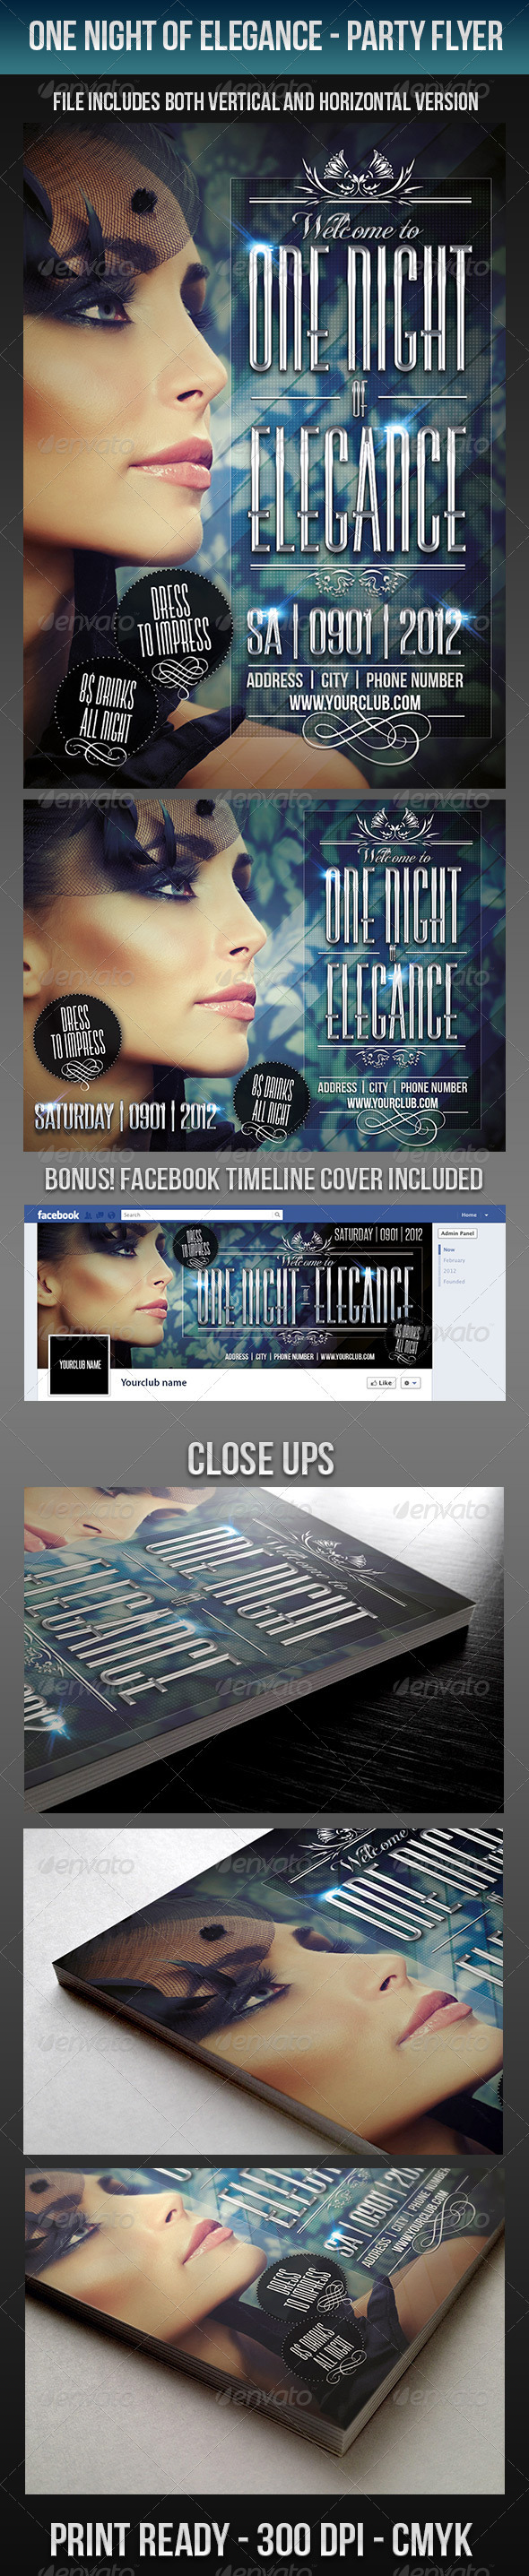 One Night Of Elegance Party Flyer